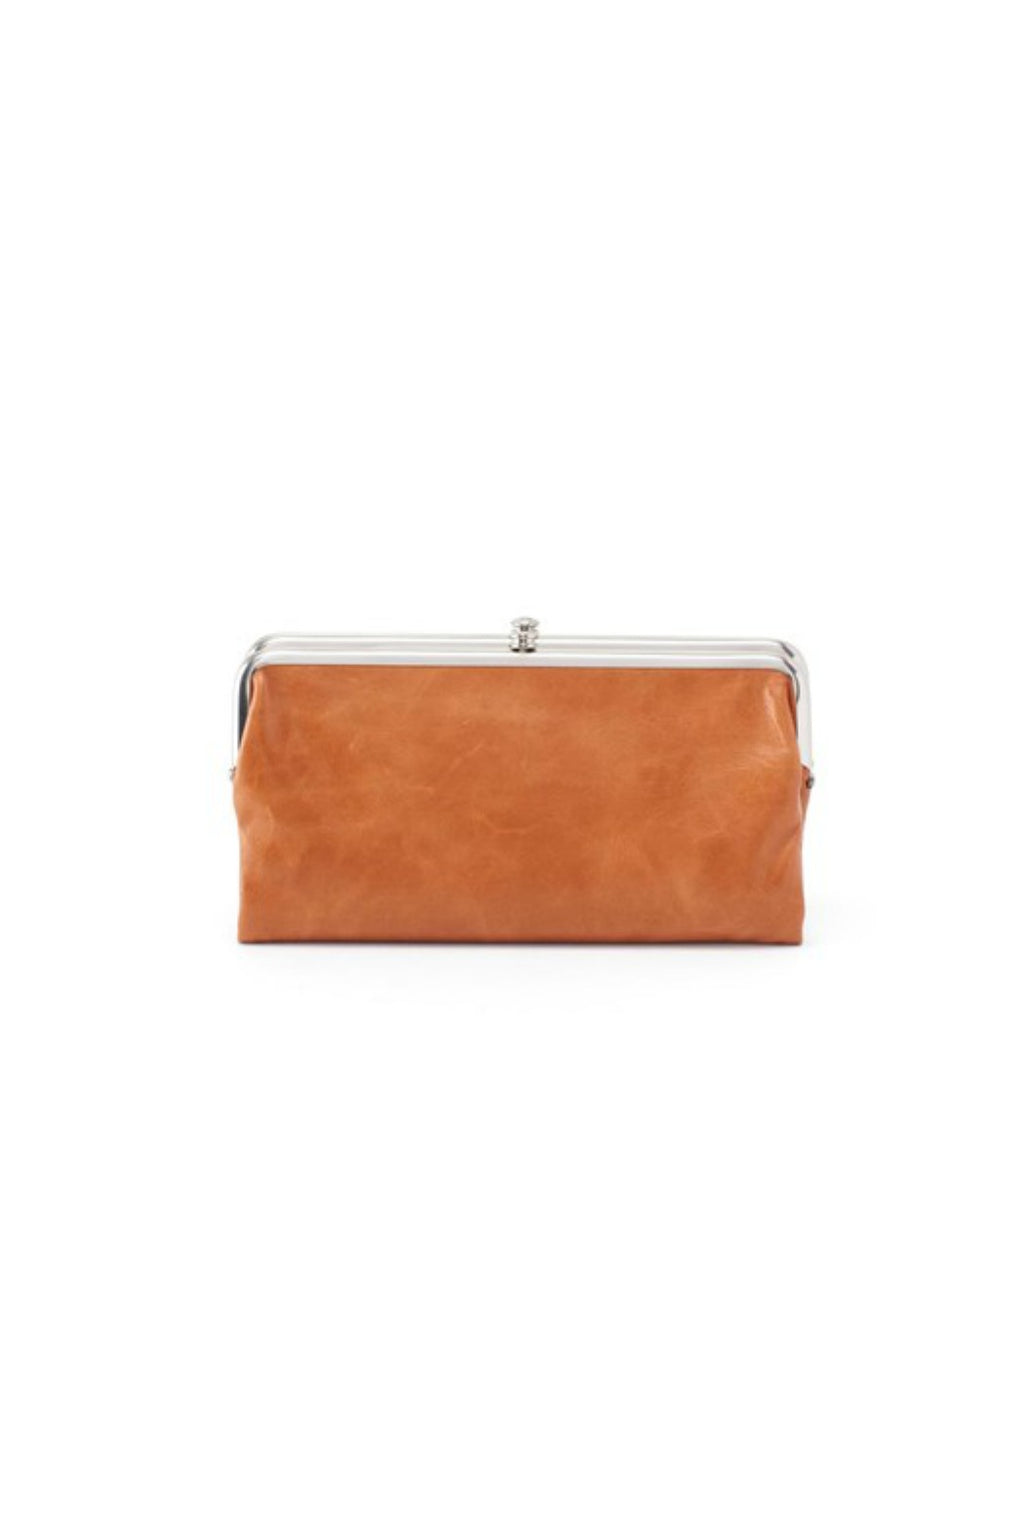 Hobo Lauren Wallet in Earth